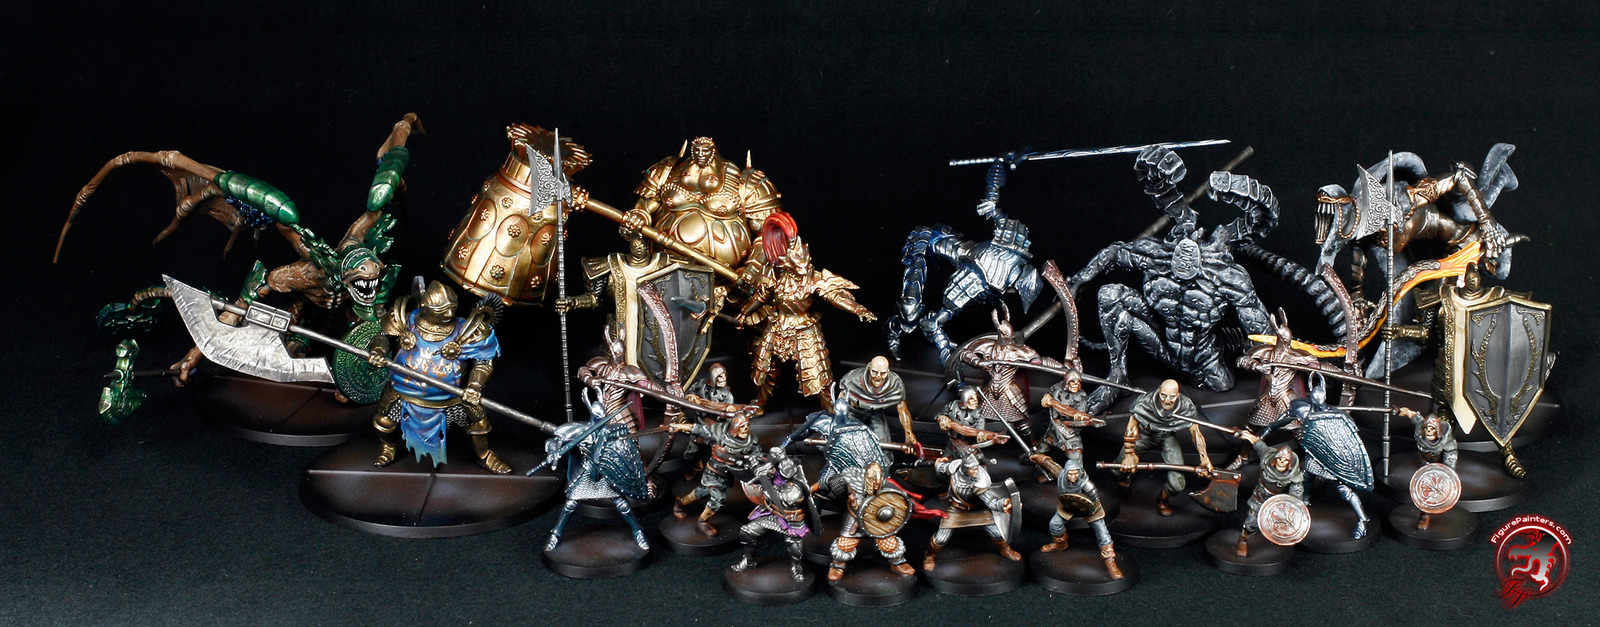 dark-souls-board-game-miniatures.jpg